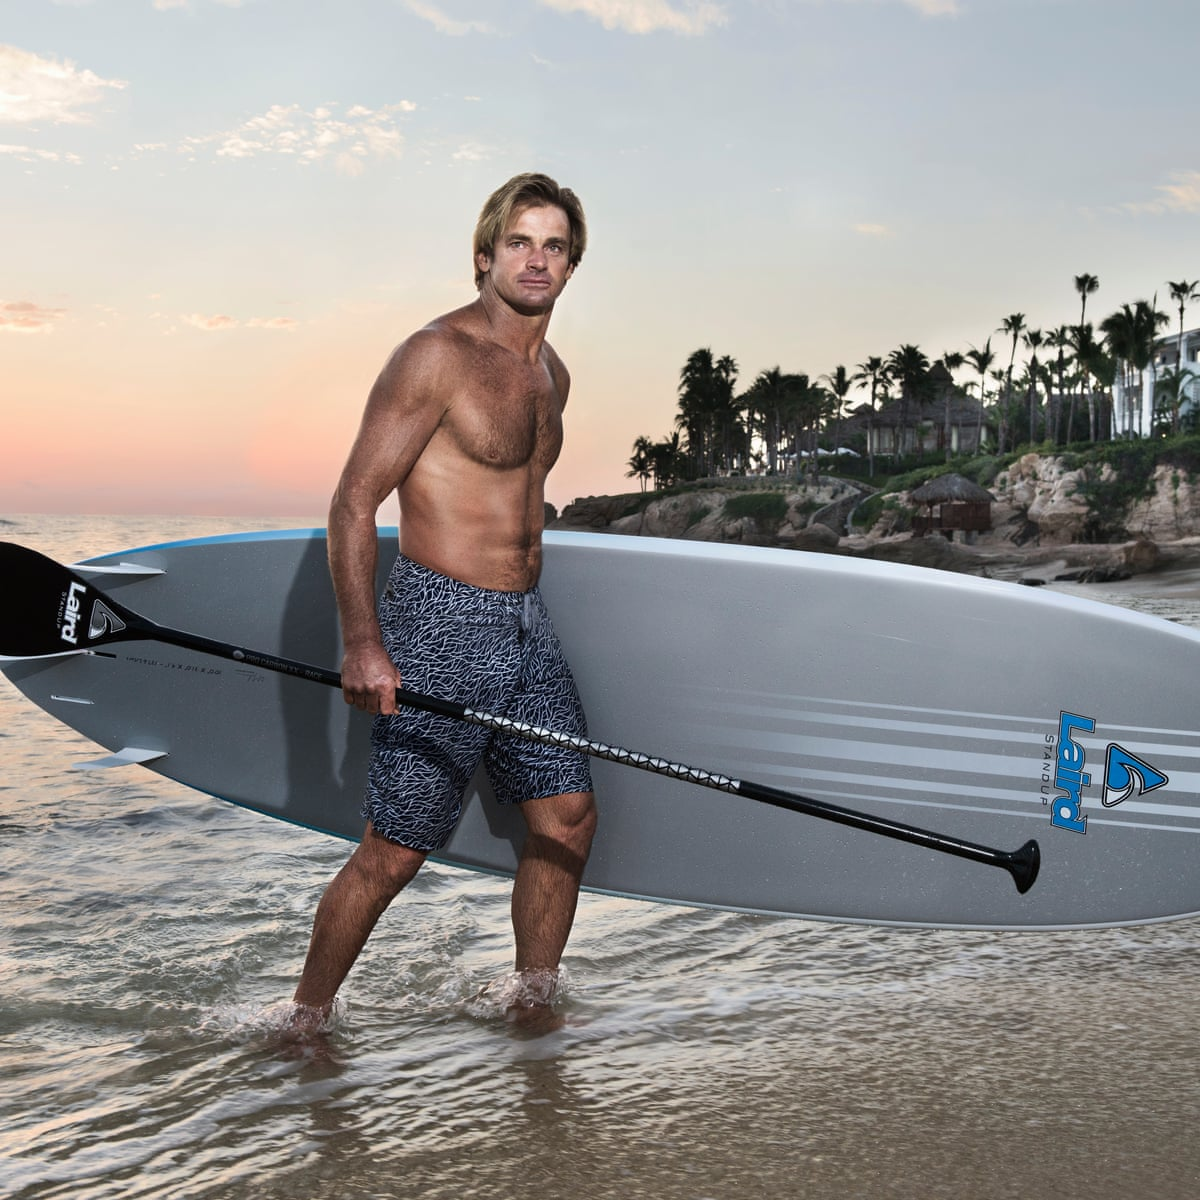 Laird Hamilton S Age Busting 10 Point Plan To Supercharge Your Body Surfing The Guardian